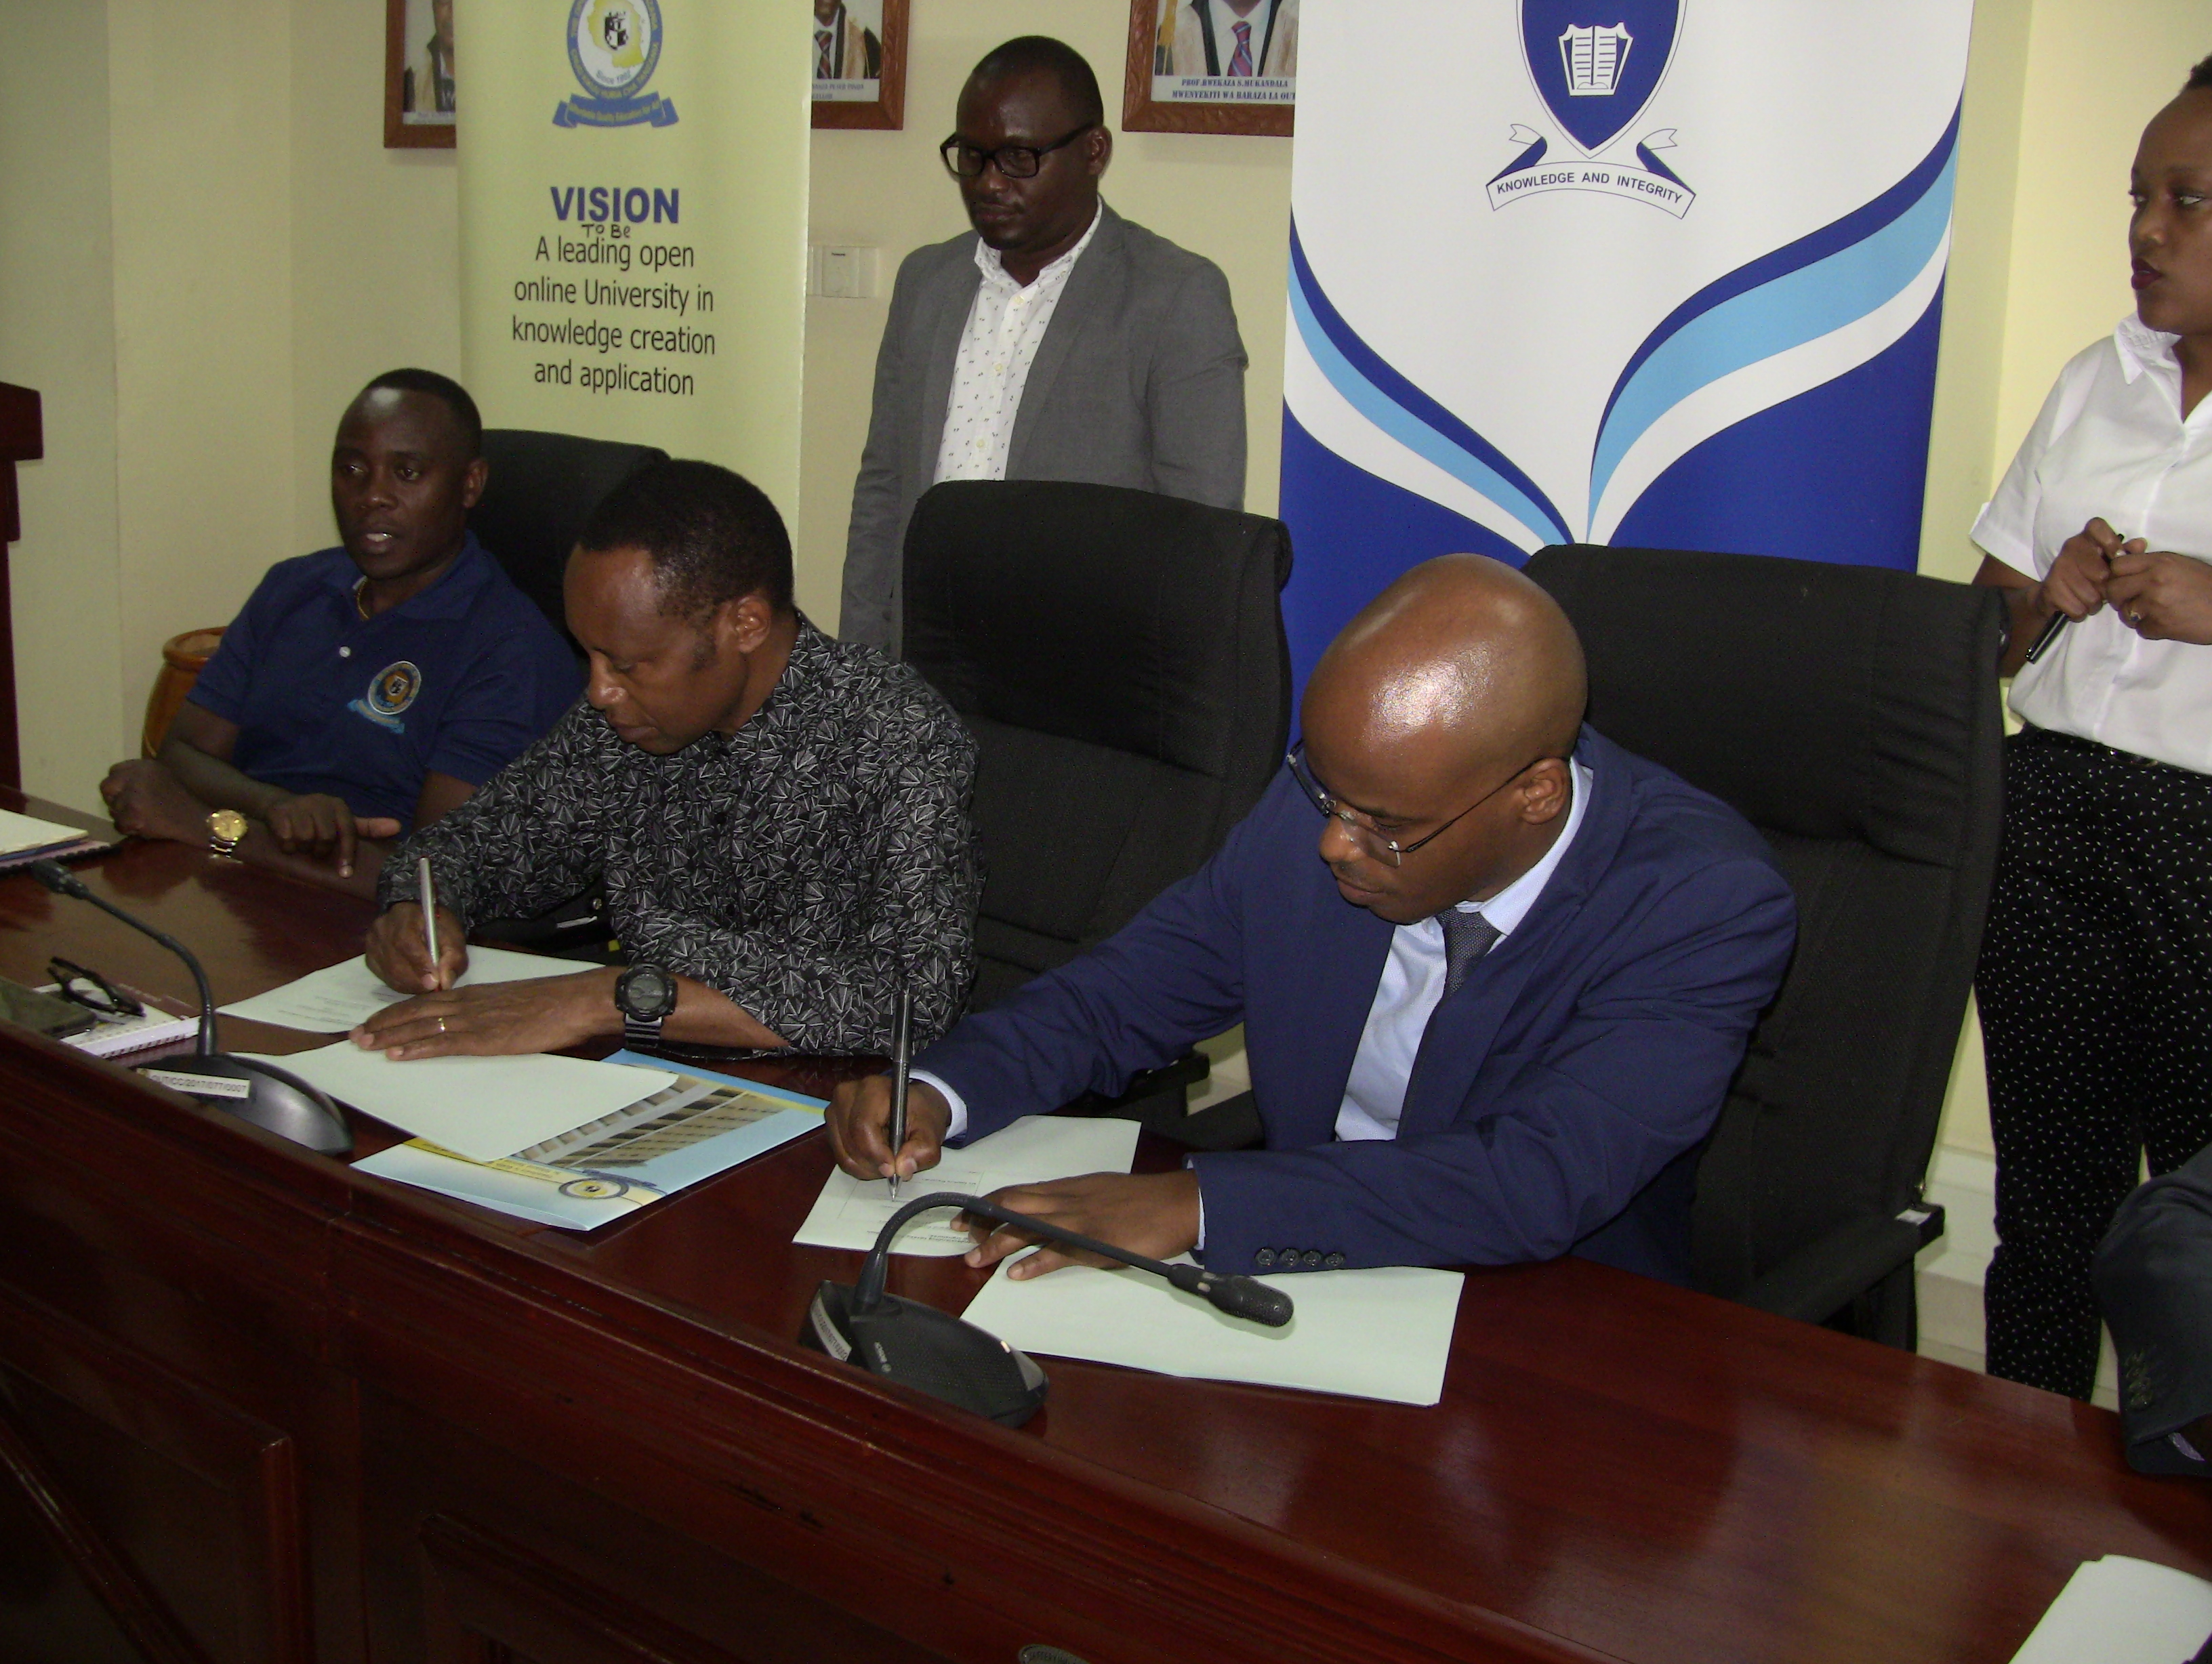 SIGNING OF MoU BETWEEN OPEN UNIVERSITY OF TANZANIA AND TANZANIA INSTITUTE OF BANKERS